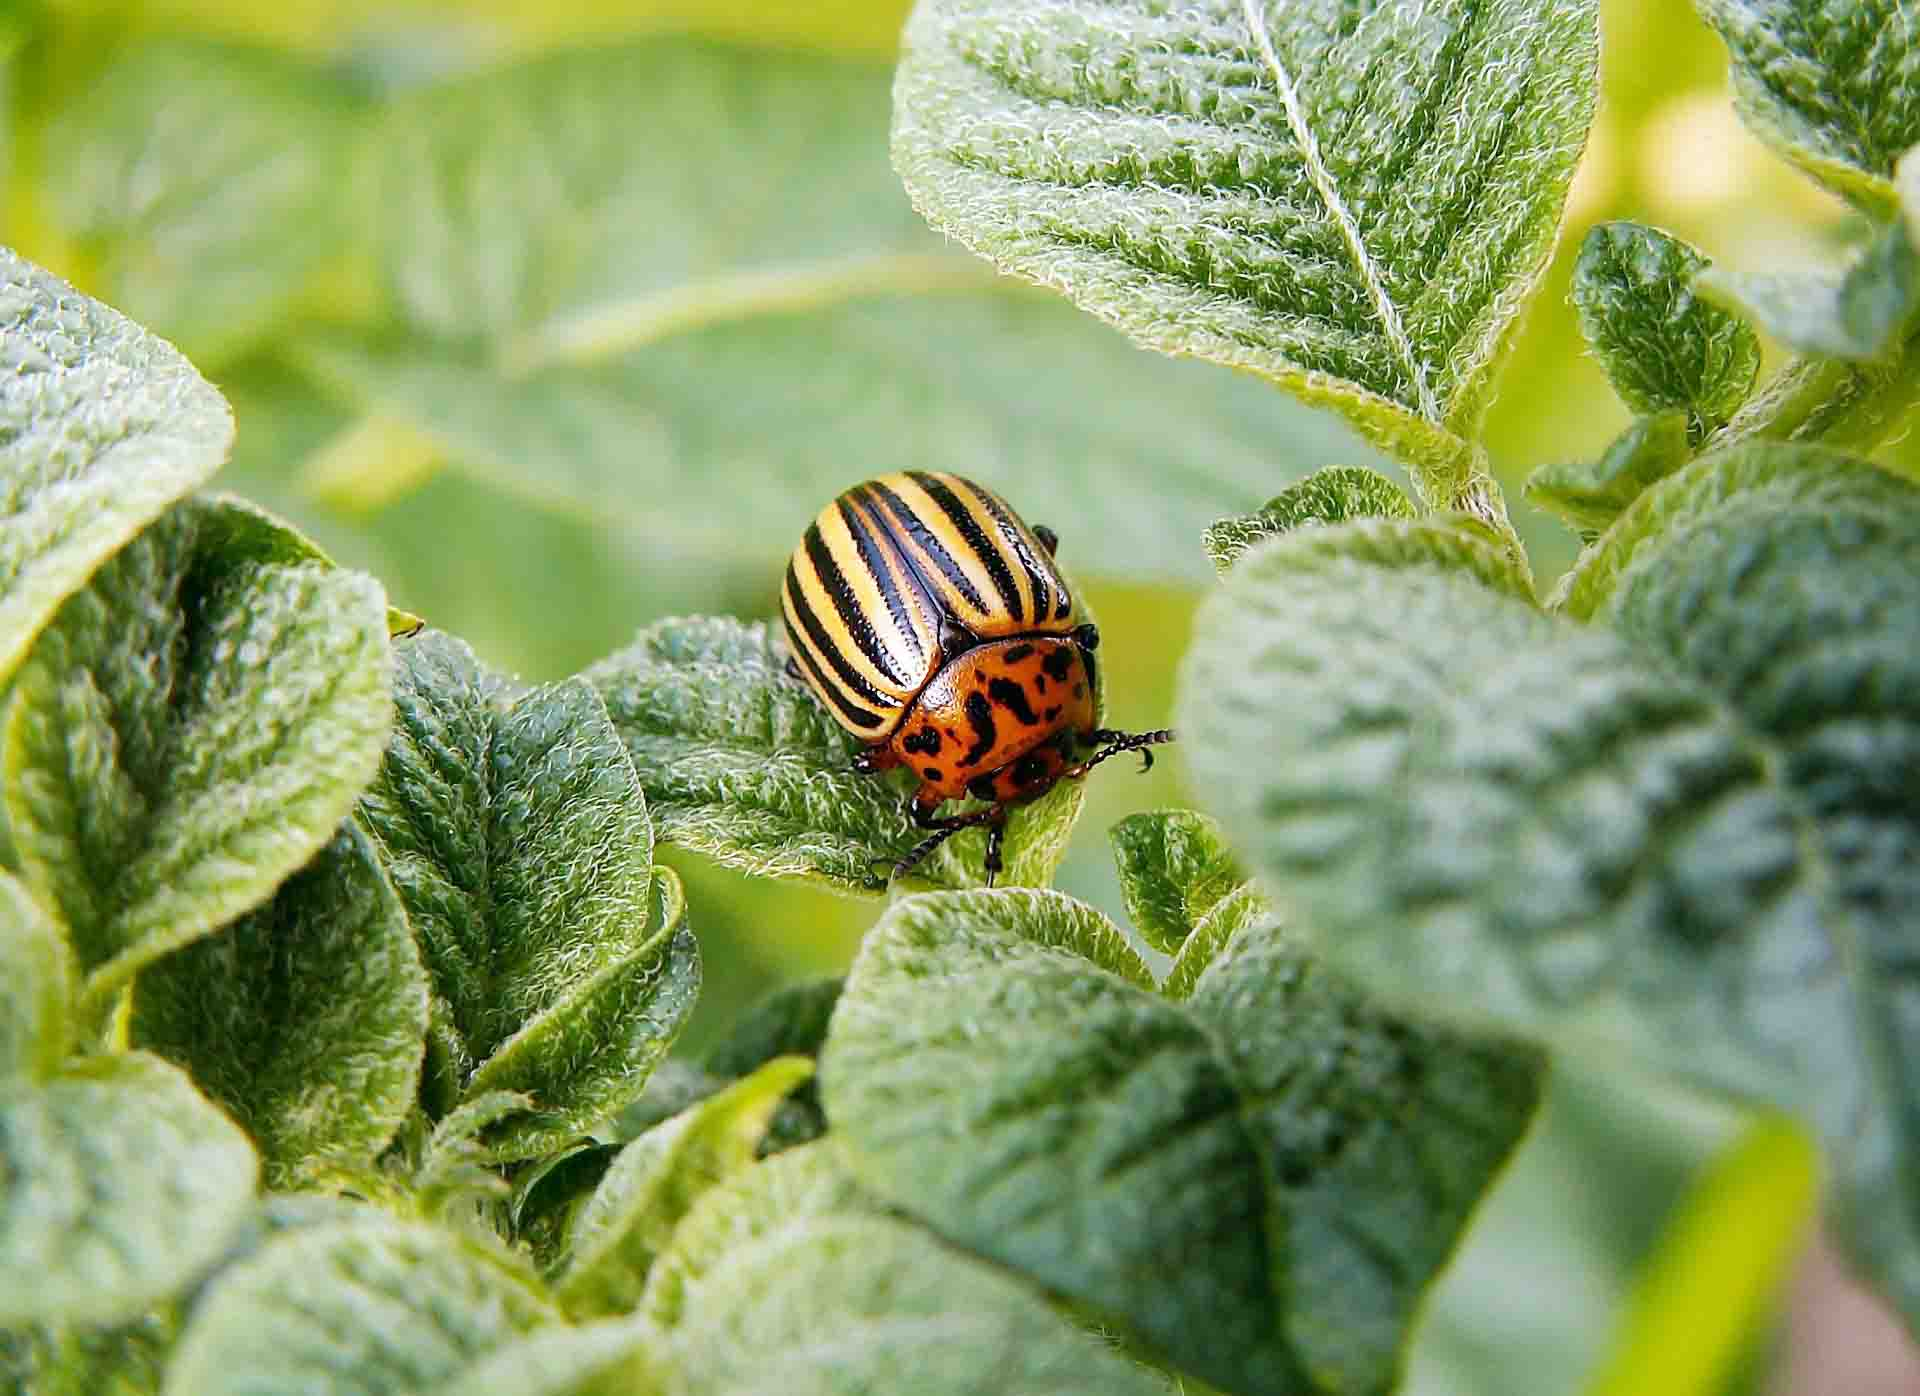 A red and yellow striped beetle sitting among a forest of green leaves